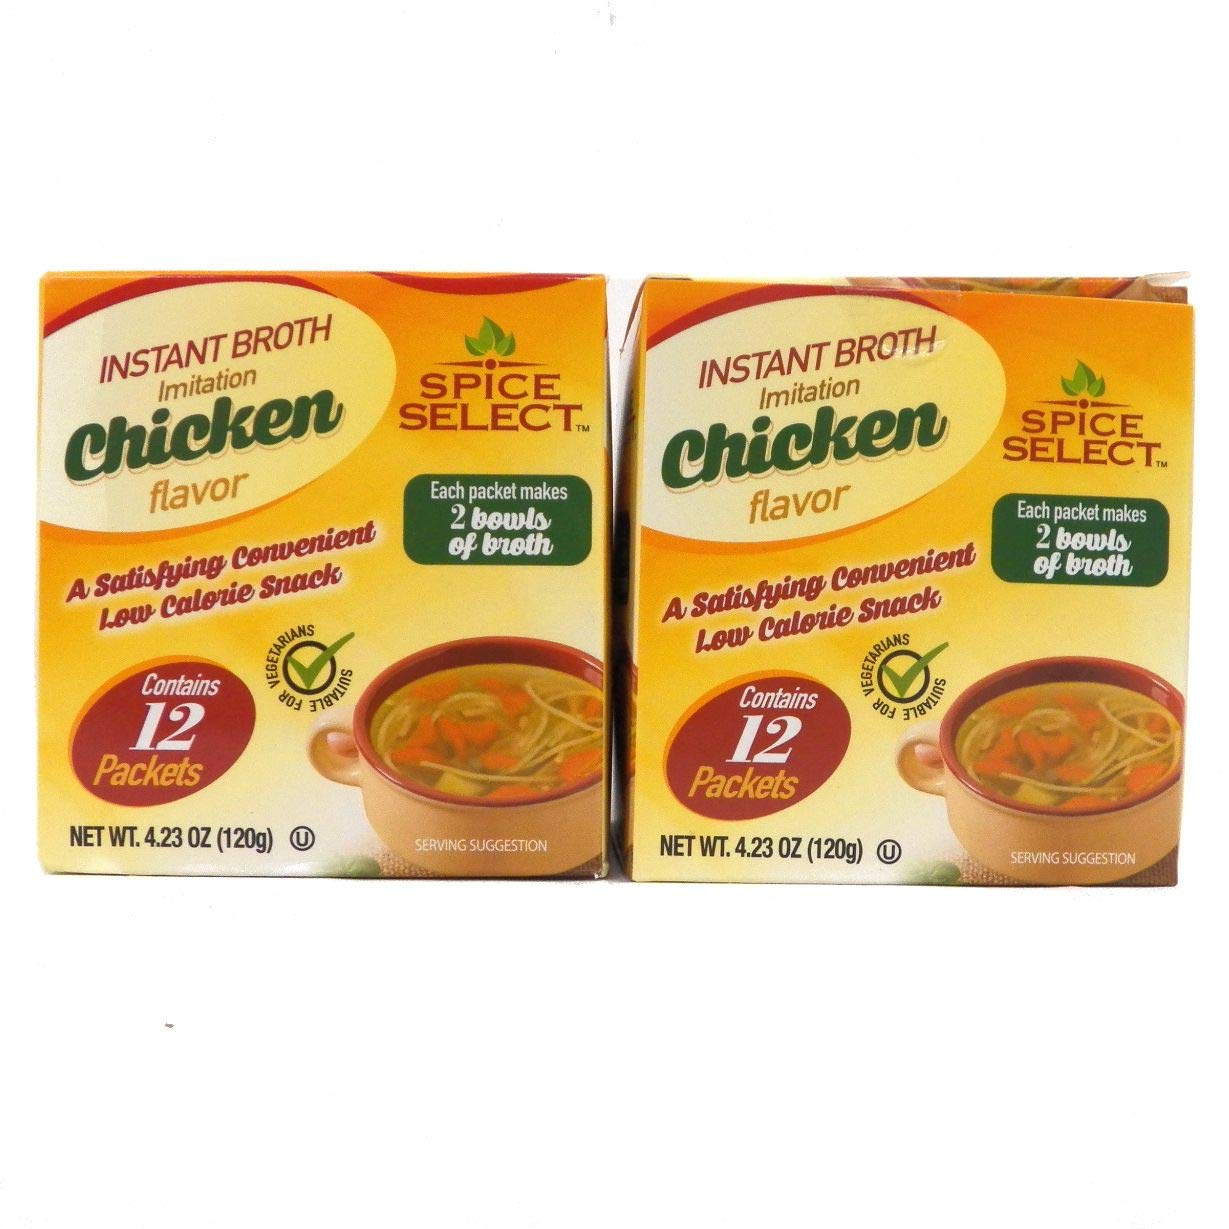 Spice Select Instant Broth Imitation of boxes Flavor Chicken Max 58% OFF 2 2021 model